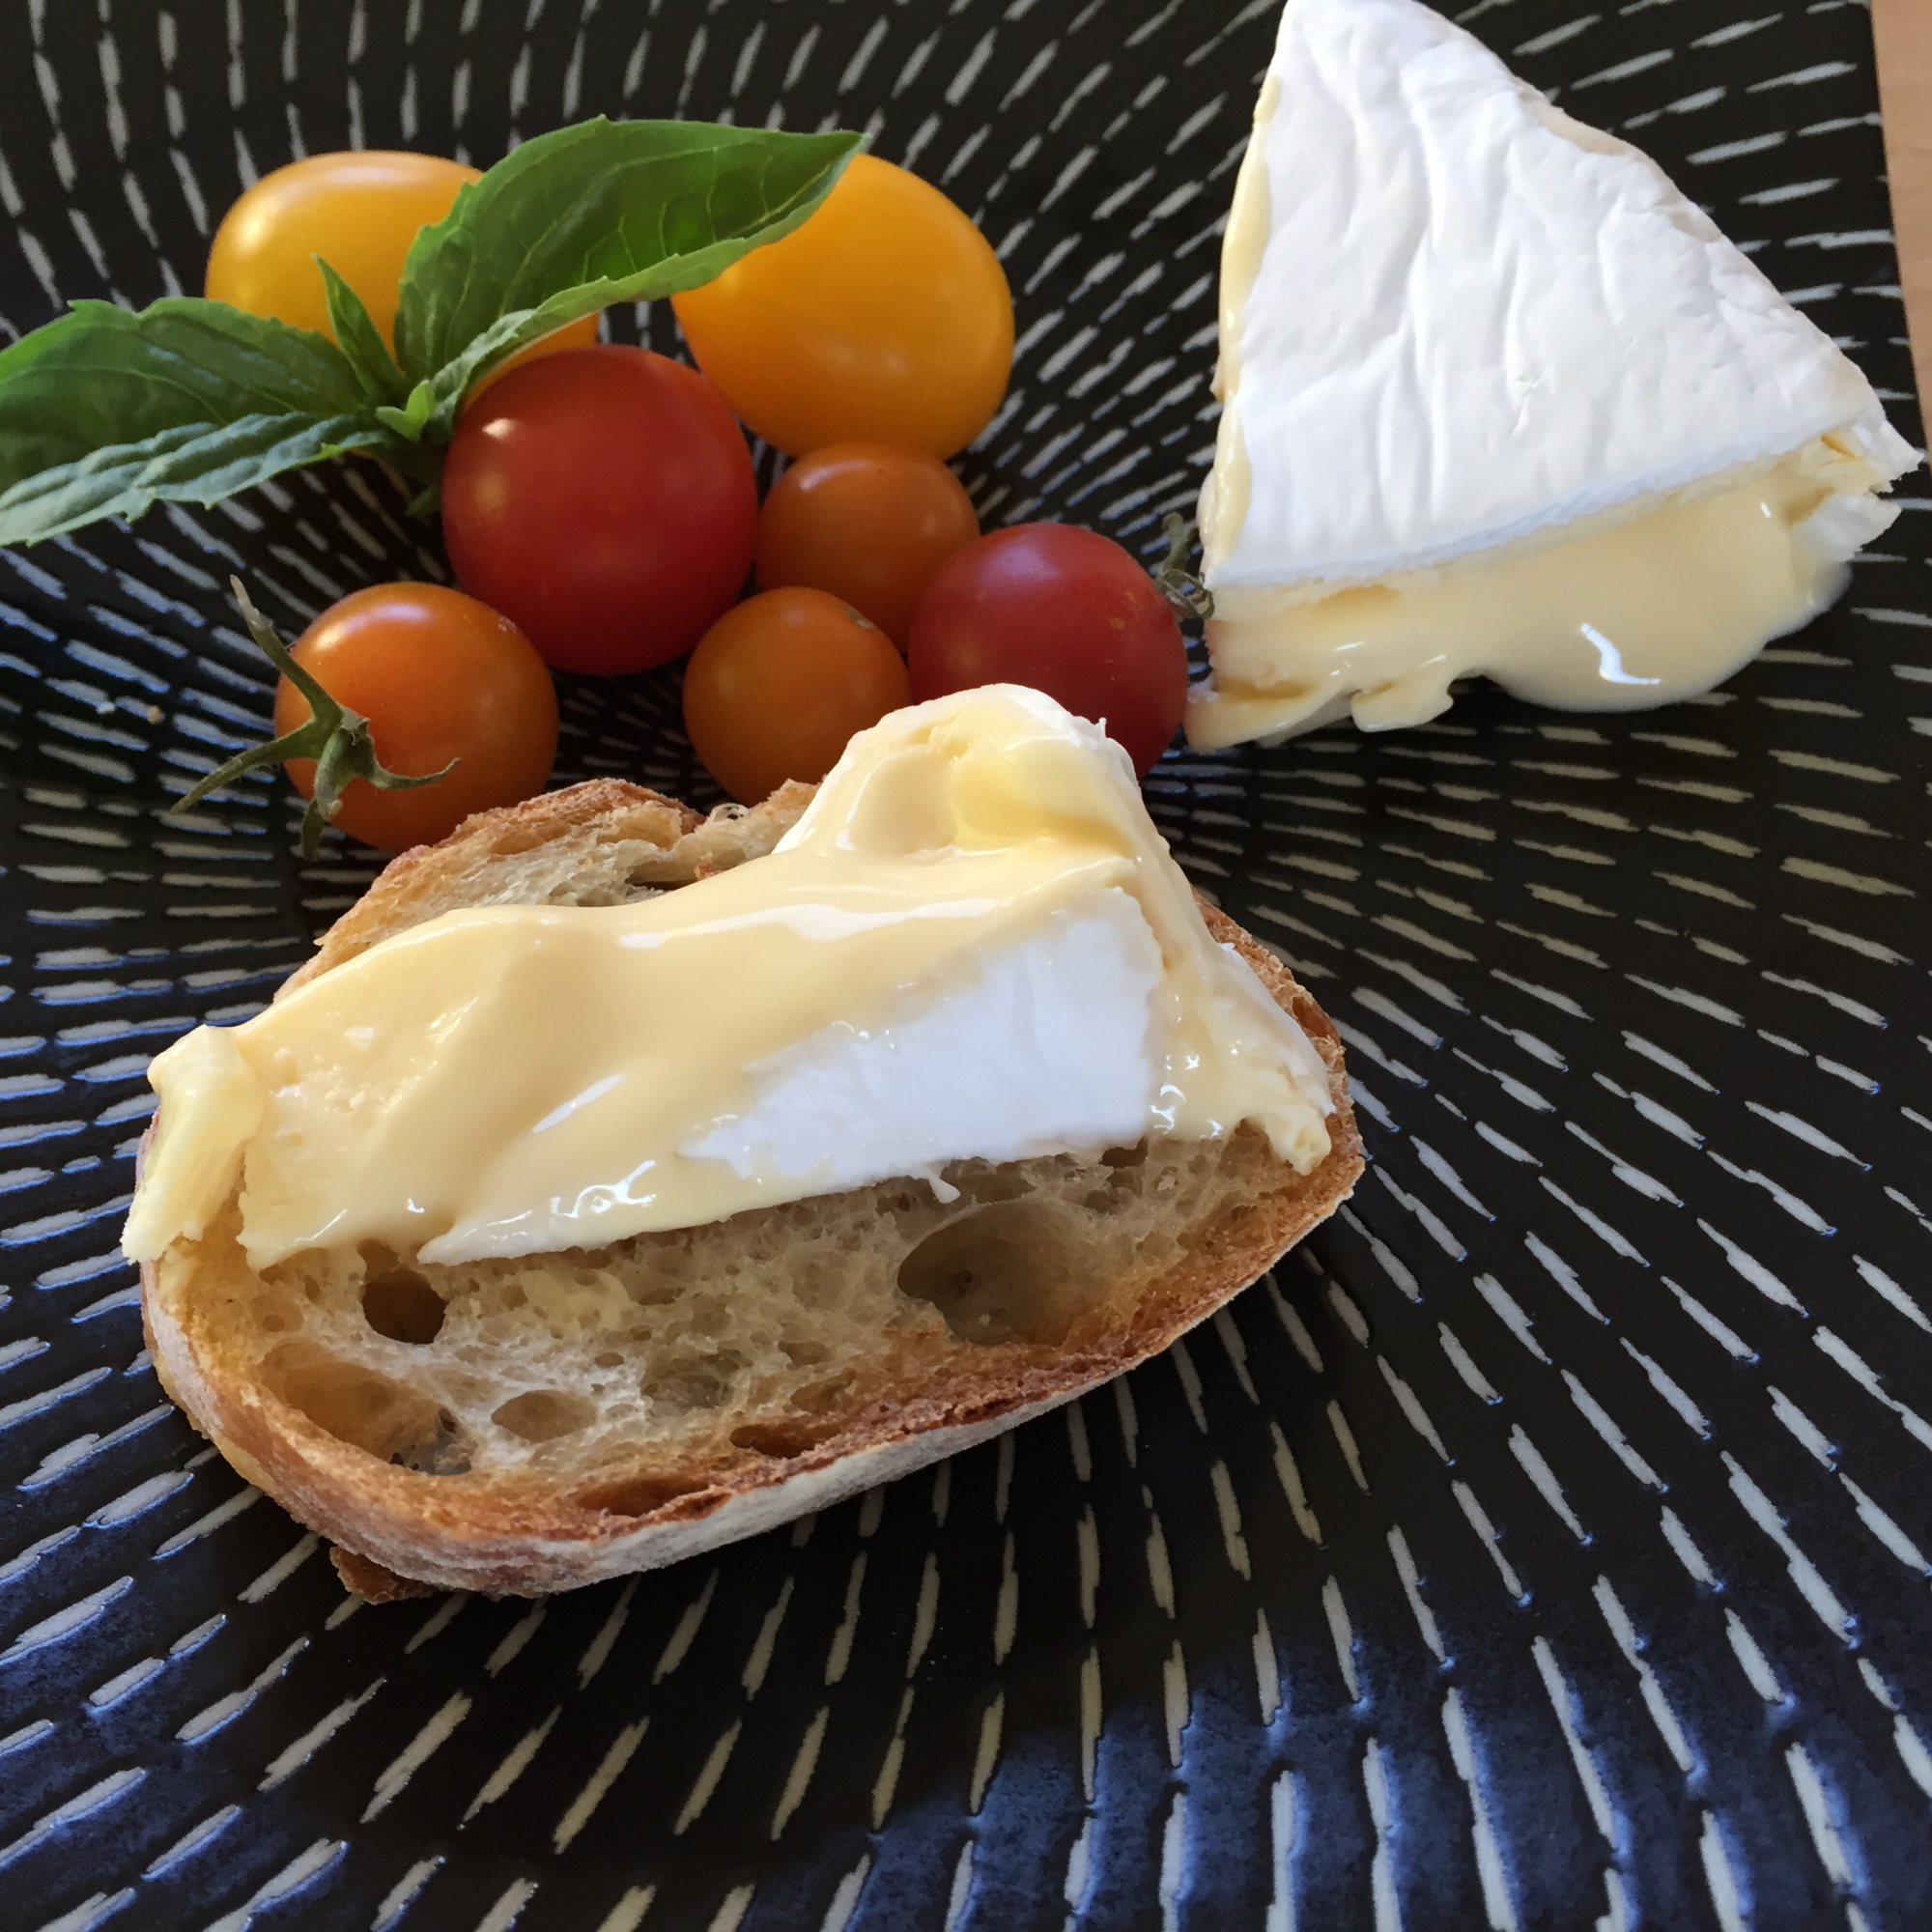 Skagit Maid Camembert is available in 6.5 ounce wrapped rounds. Larger wheels can be special ordered.